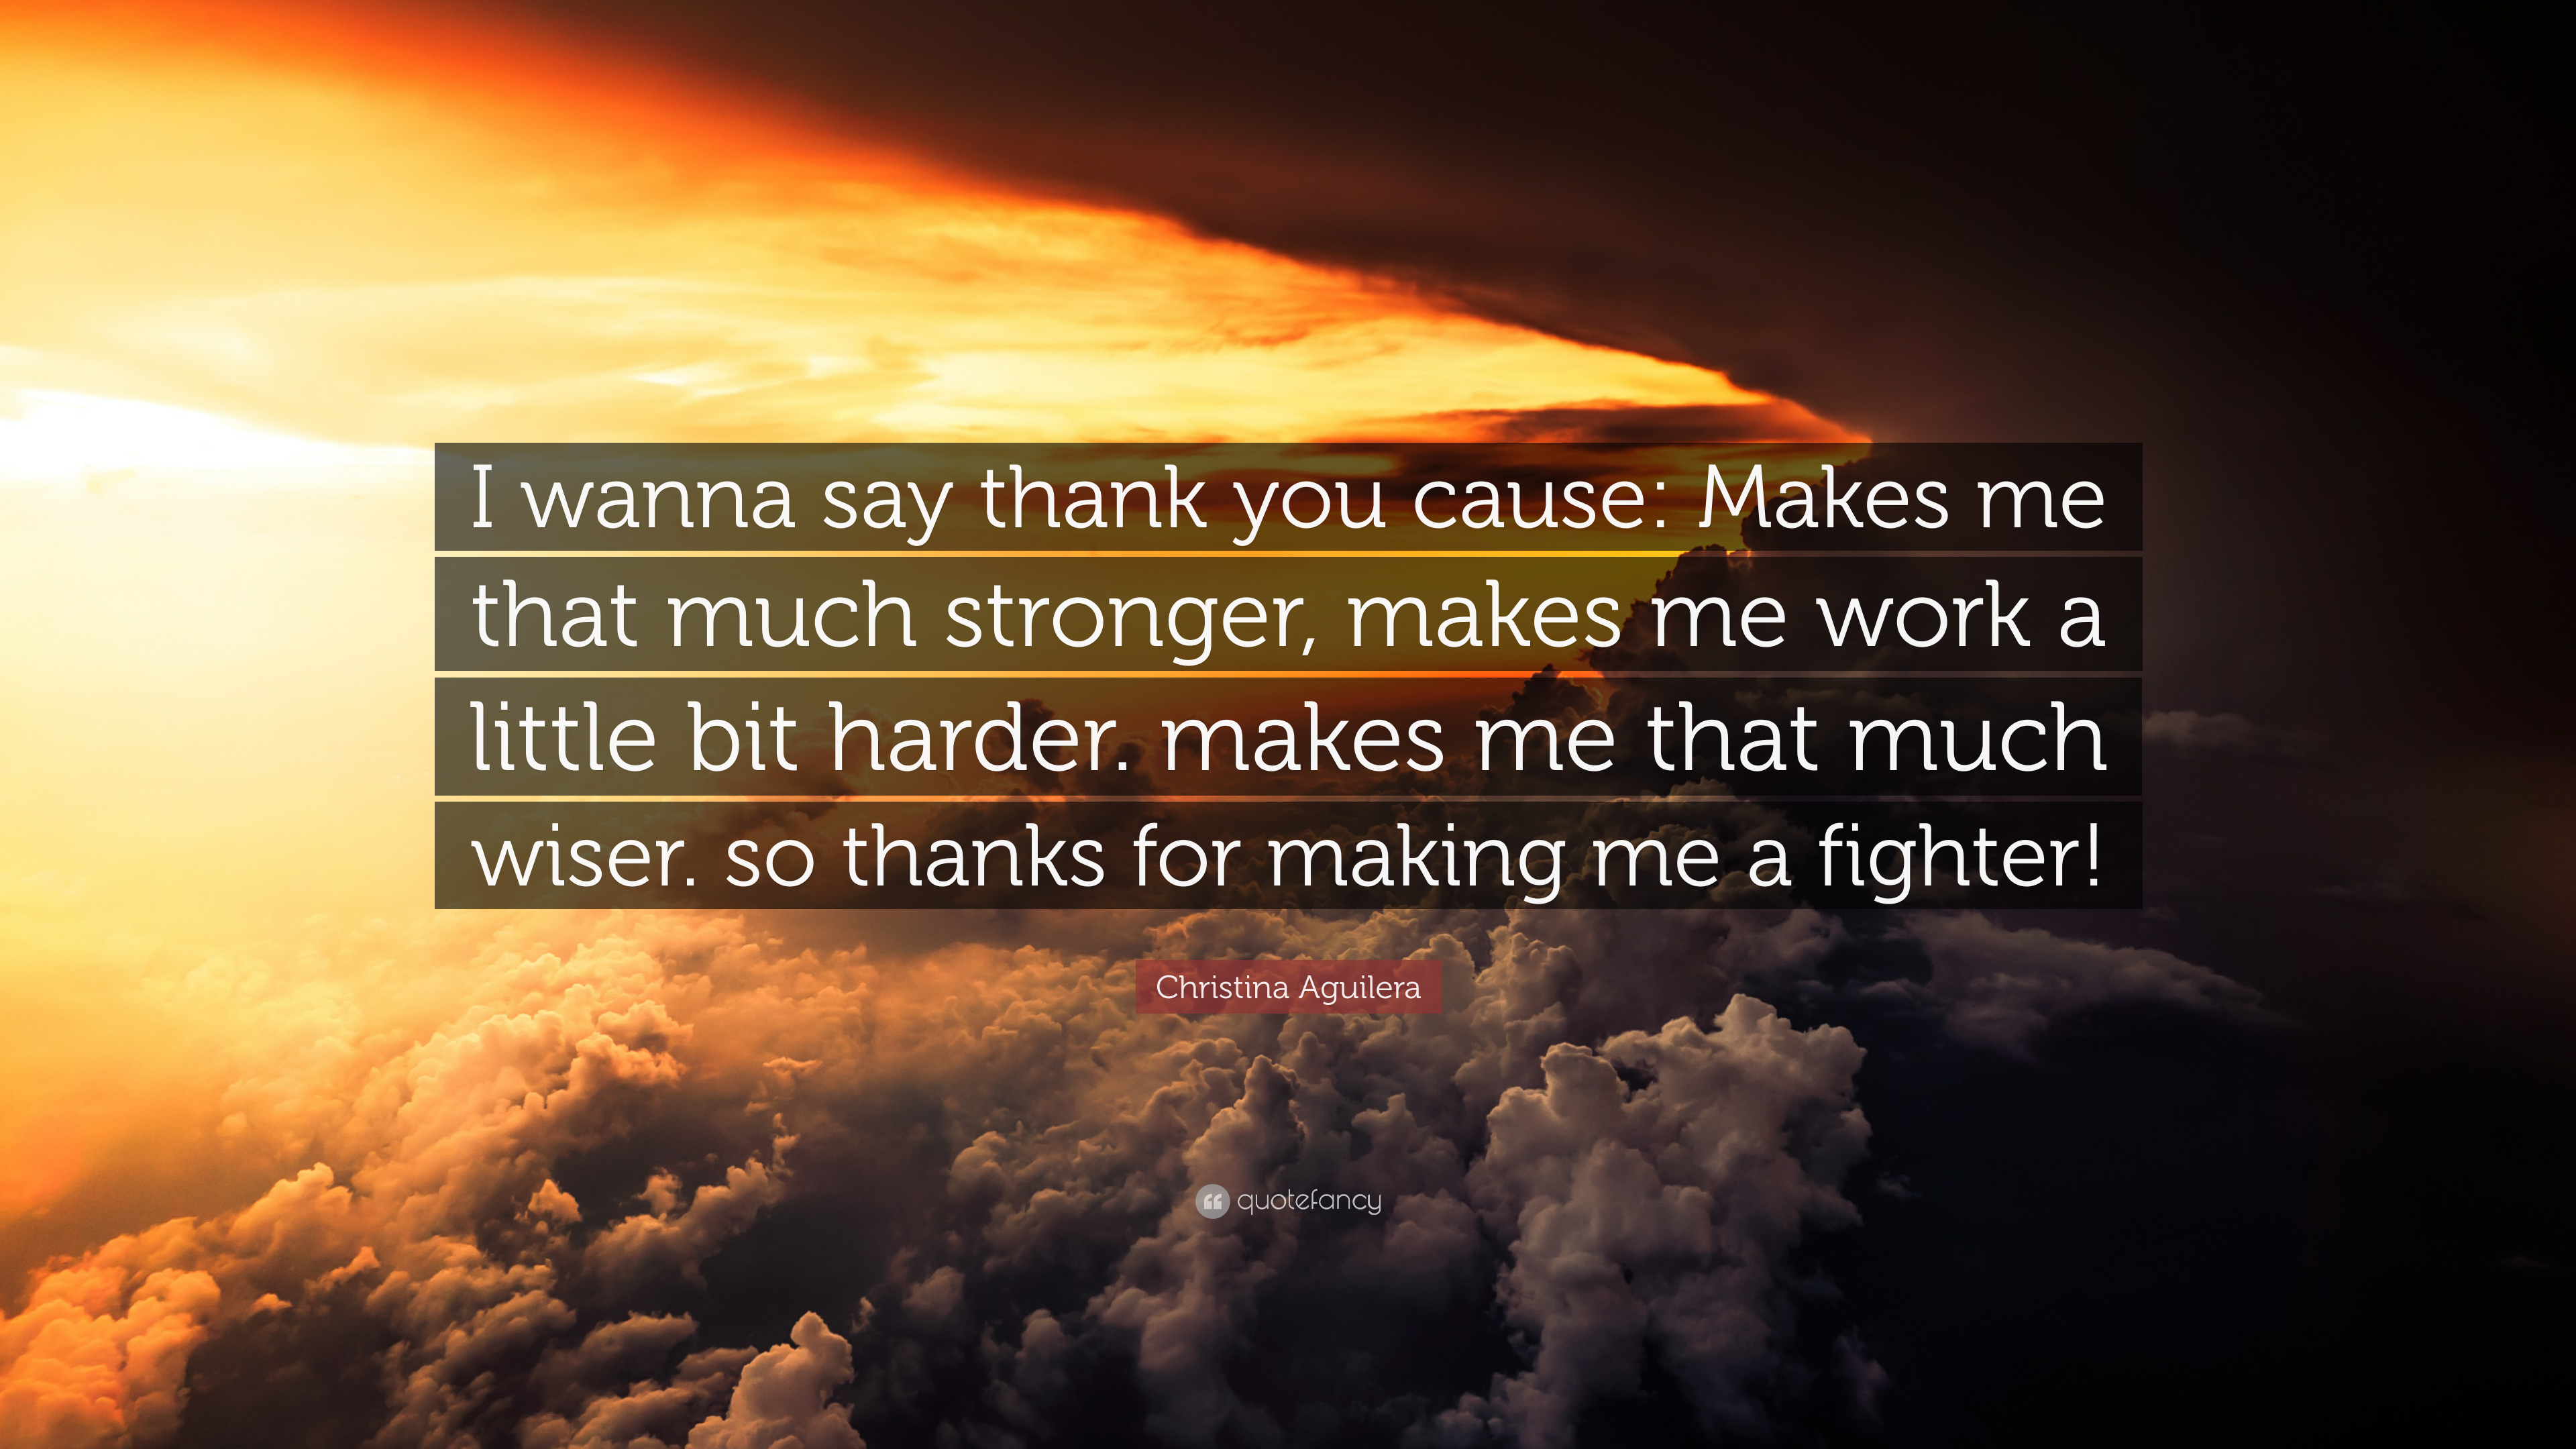 Christina Aguilera Quote I Wanna Say Thank You Cause Makes Me